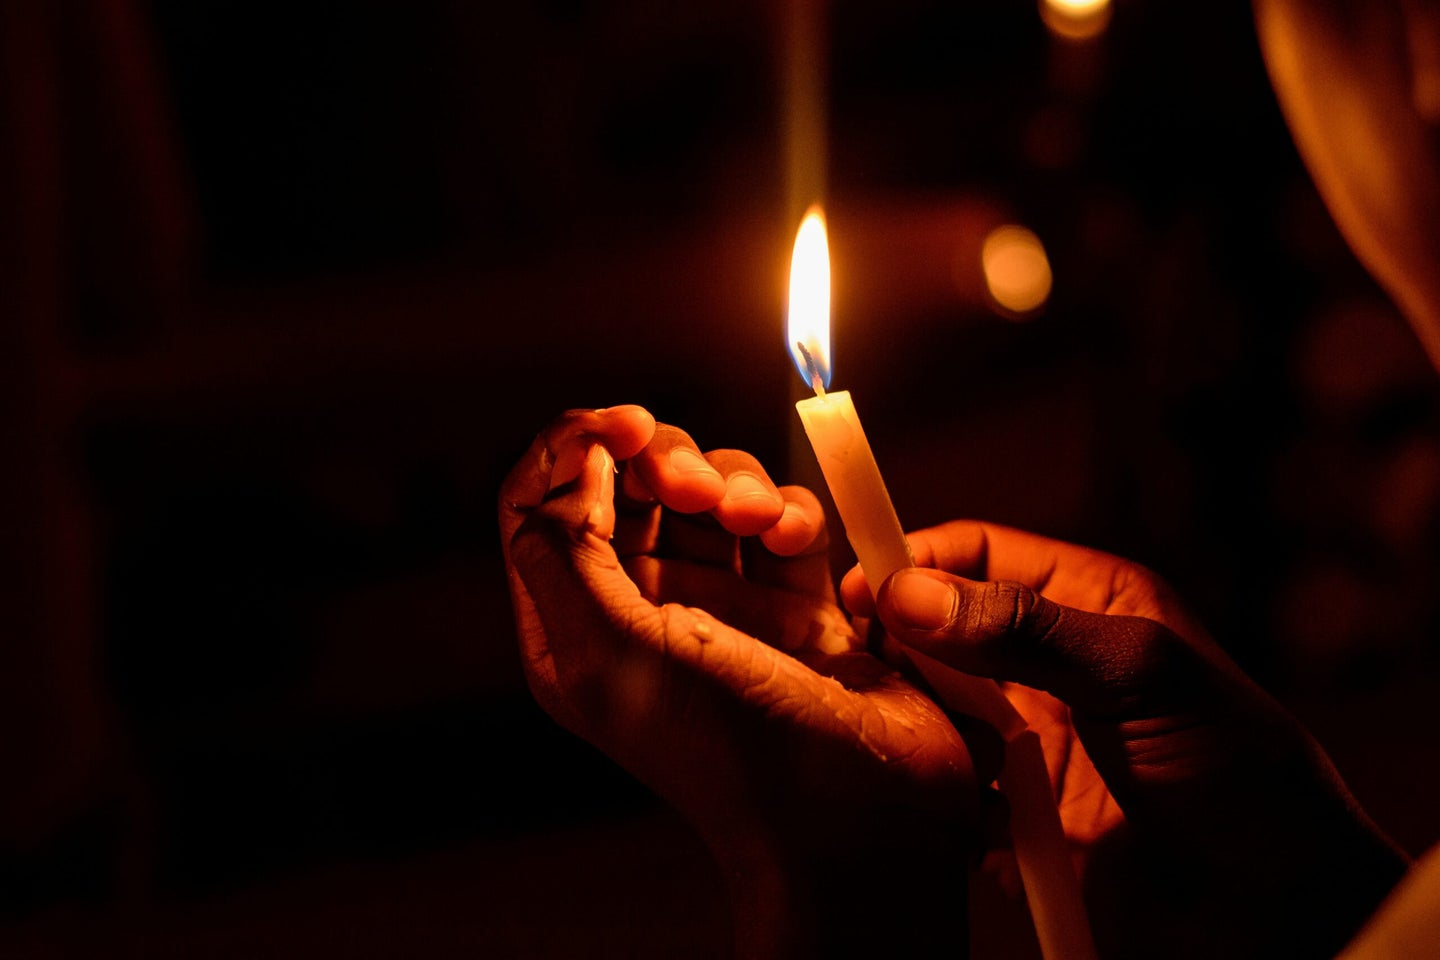 Hands holding candle.